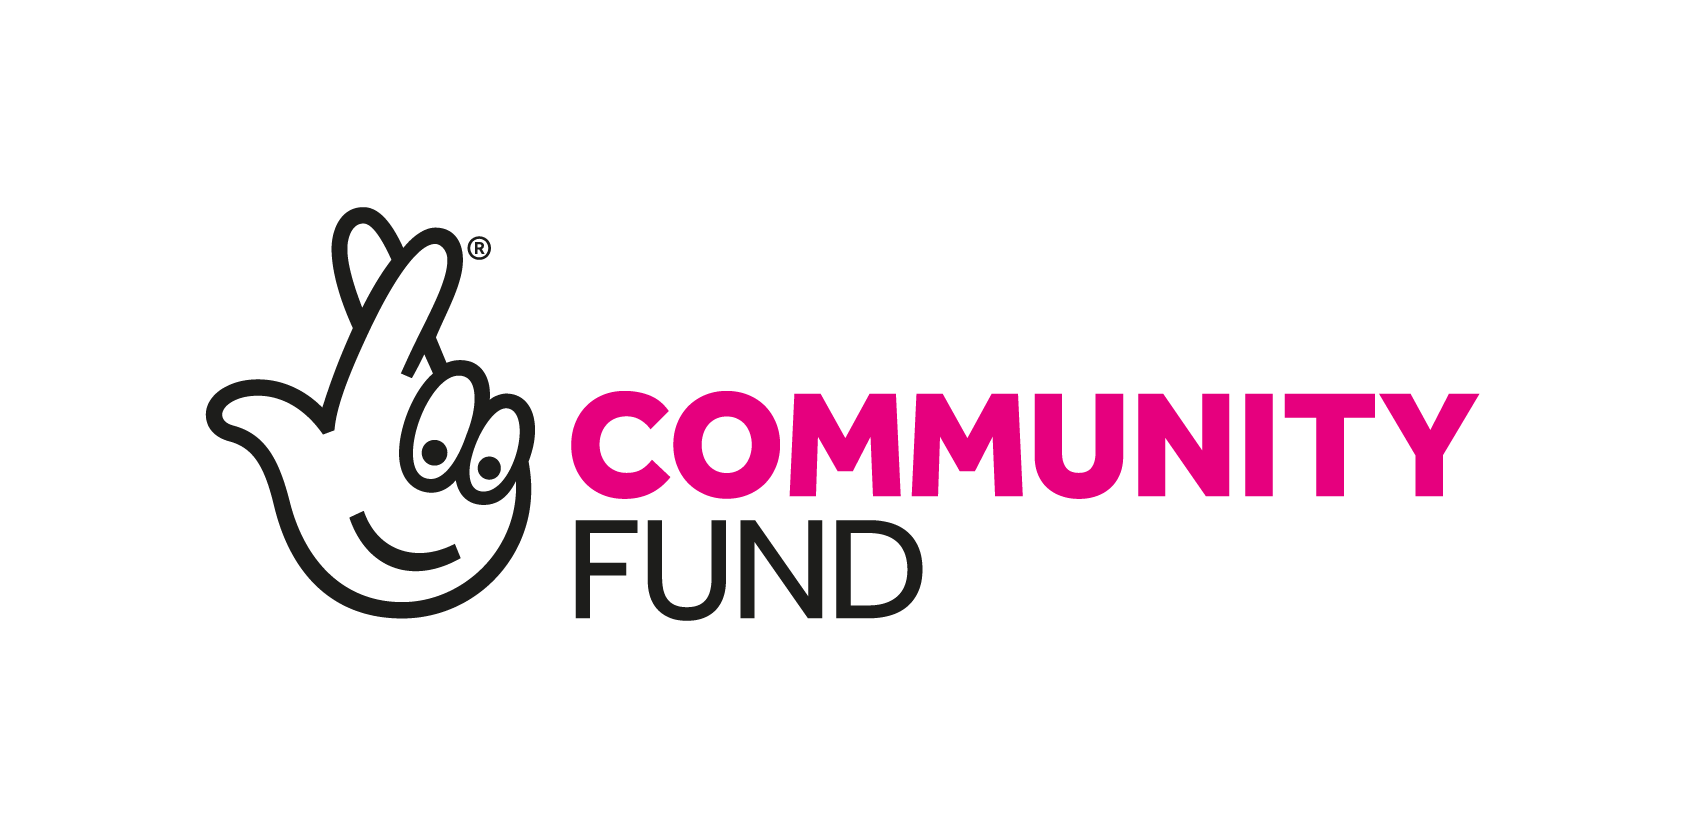 CommunityFundlogodigital.png